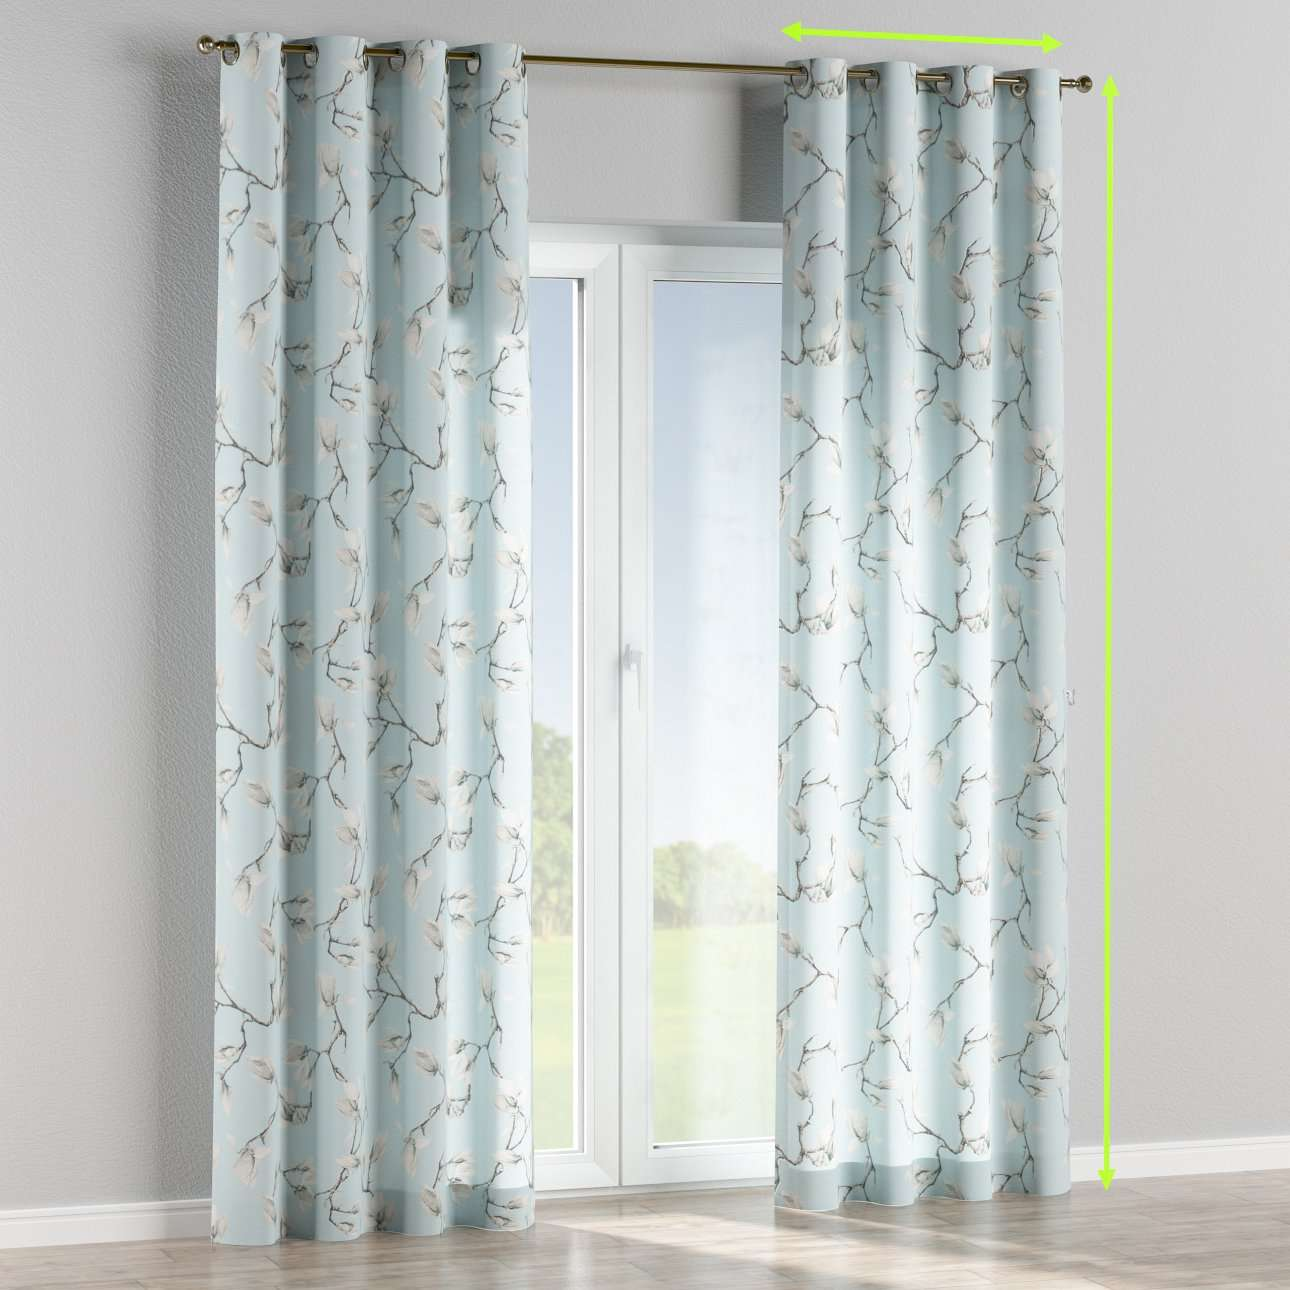 Eyelet lined curtains in collection Flowers, fabric: 311-14